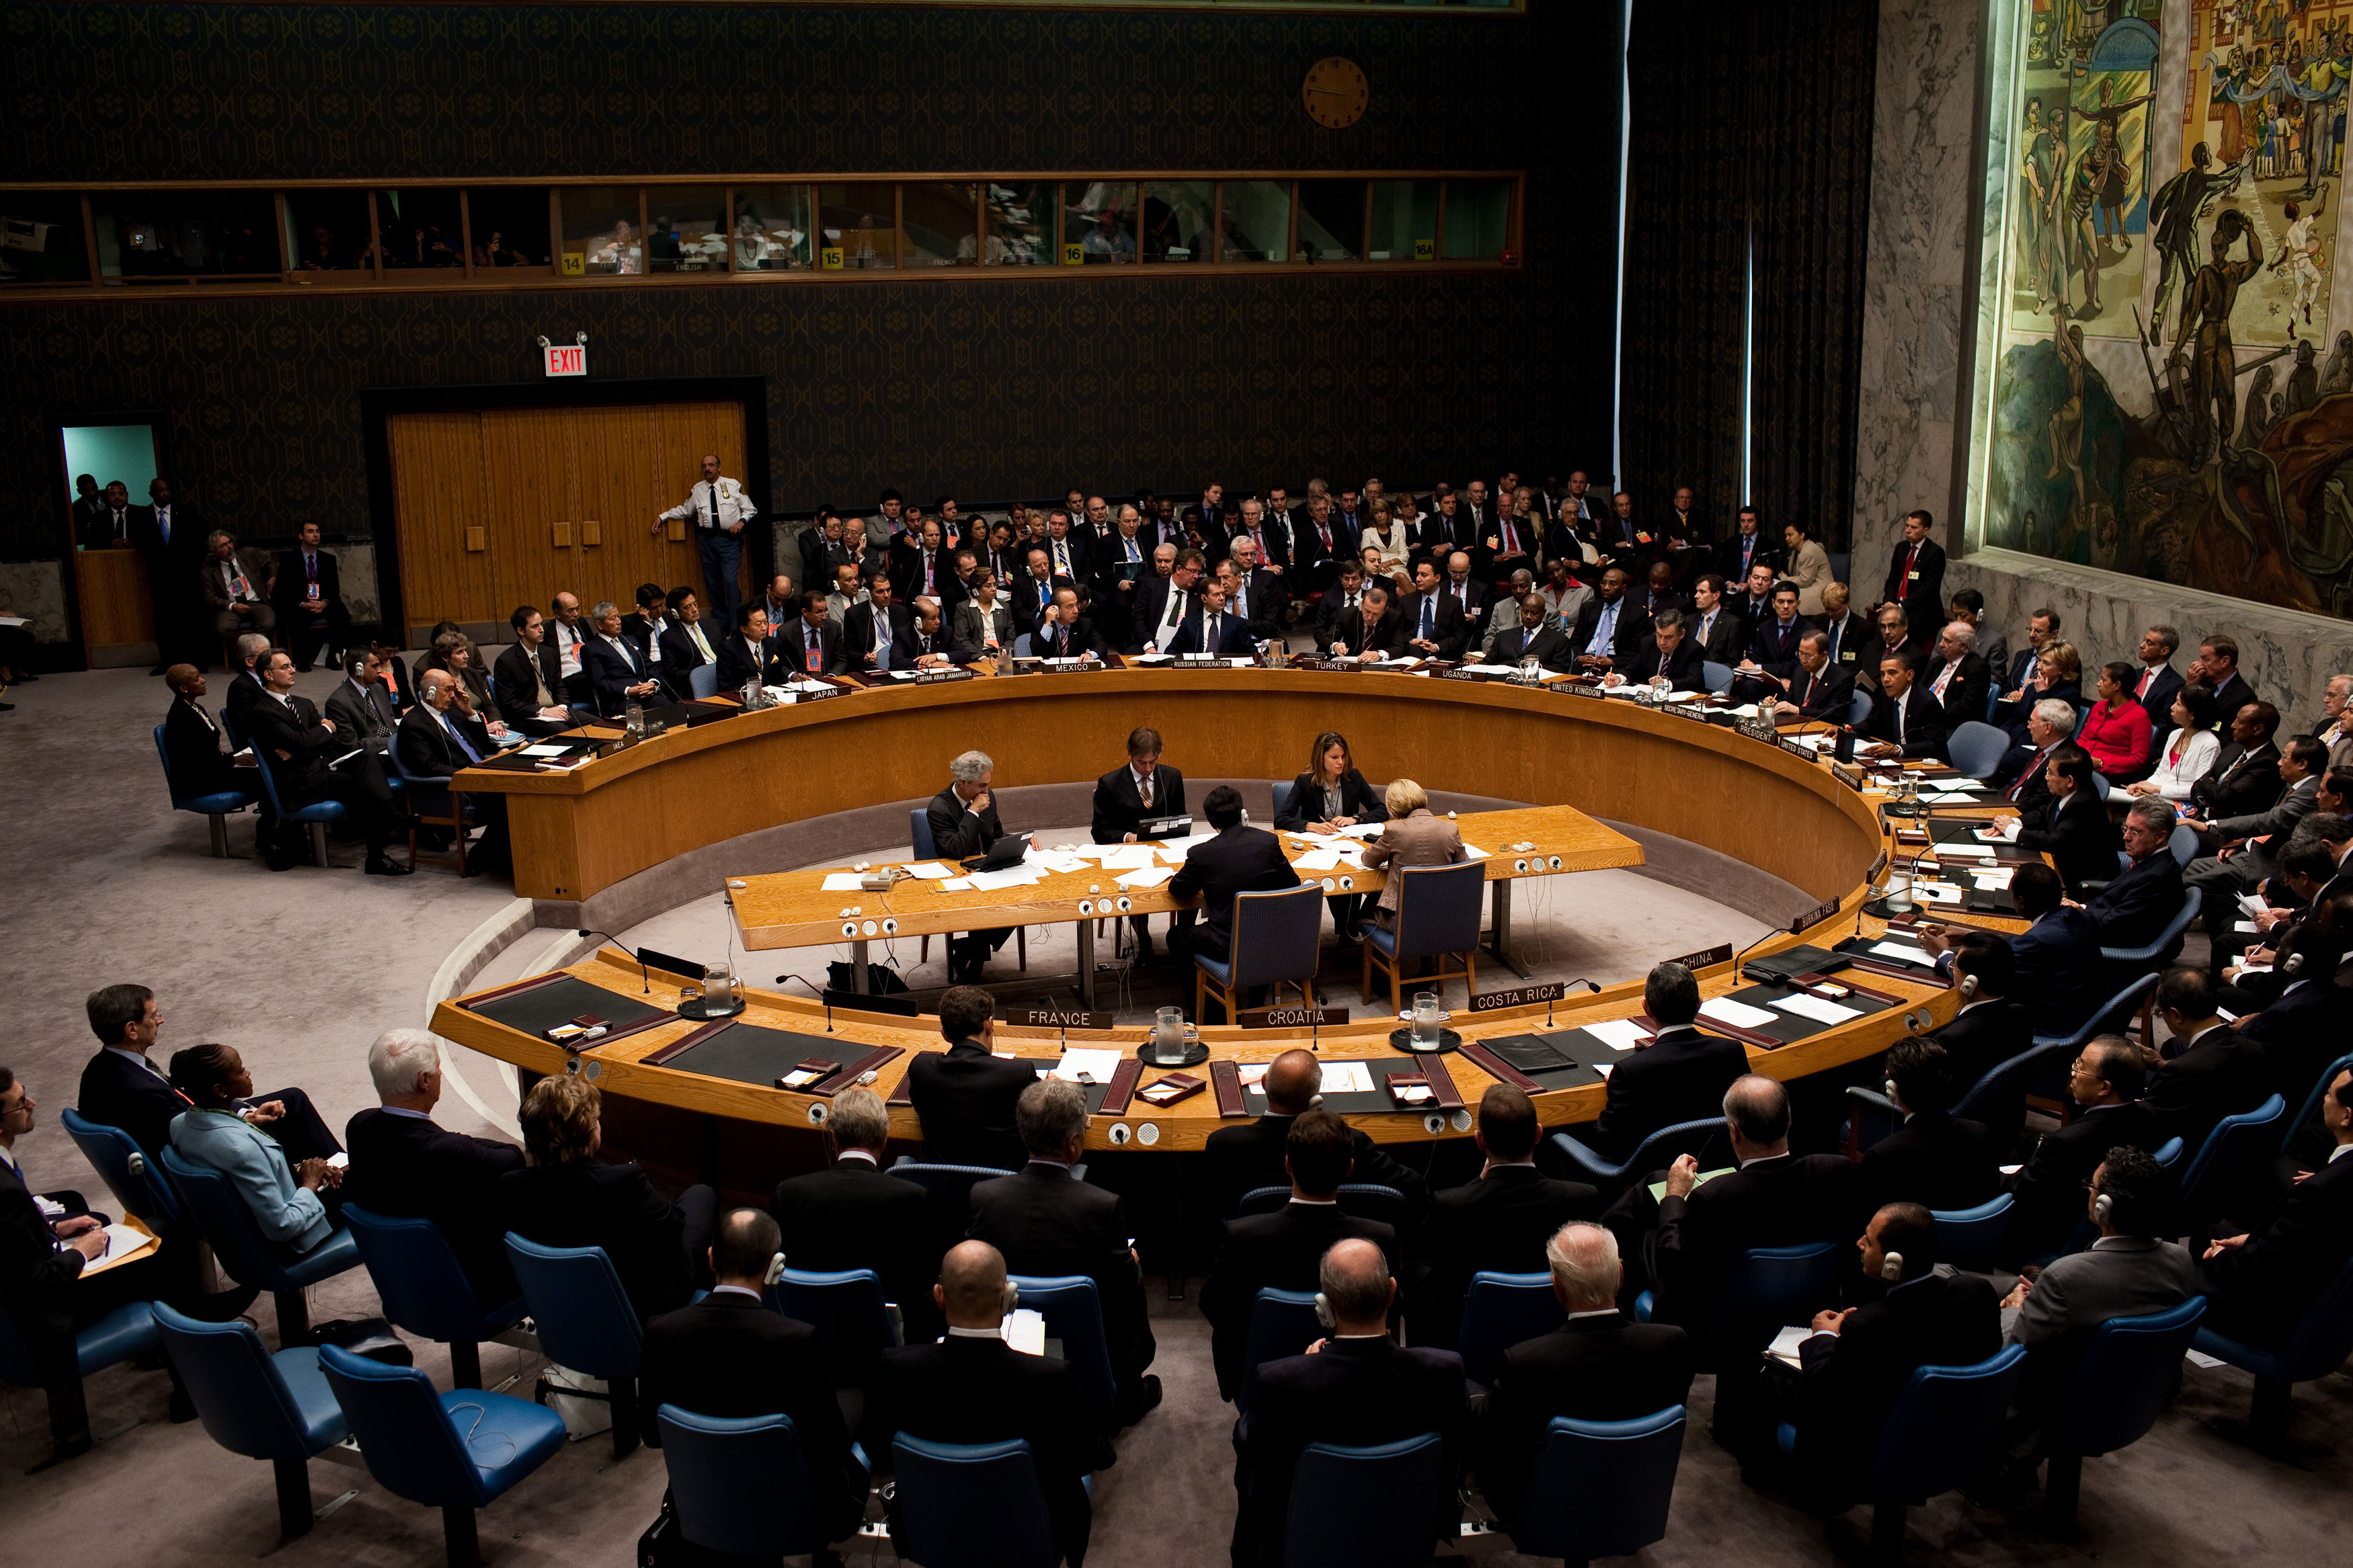 The United Nations Security Council. (Source)